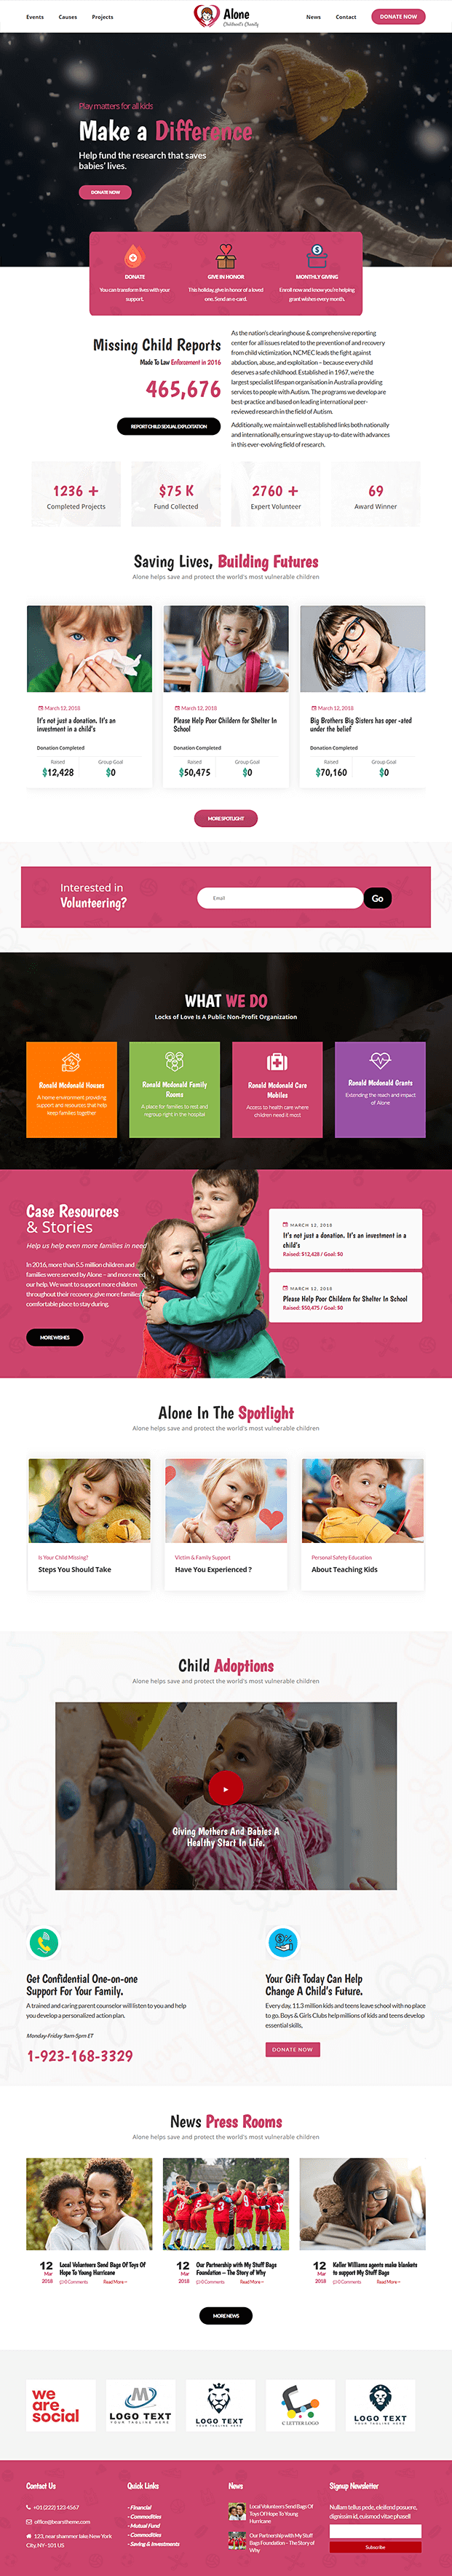 Home - WordPress NGO Theme